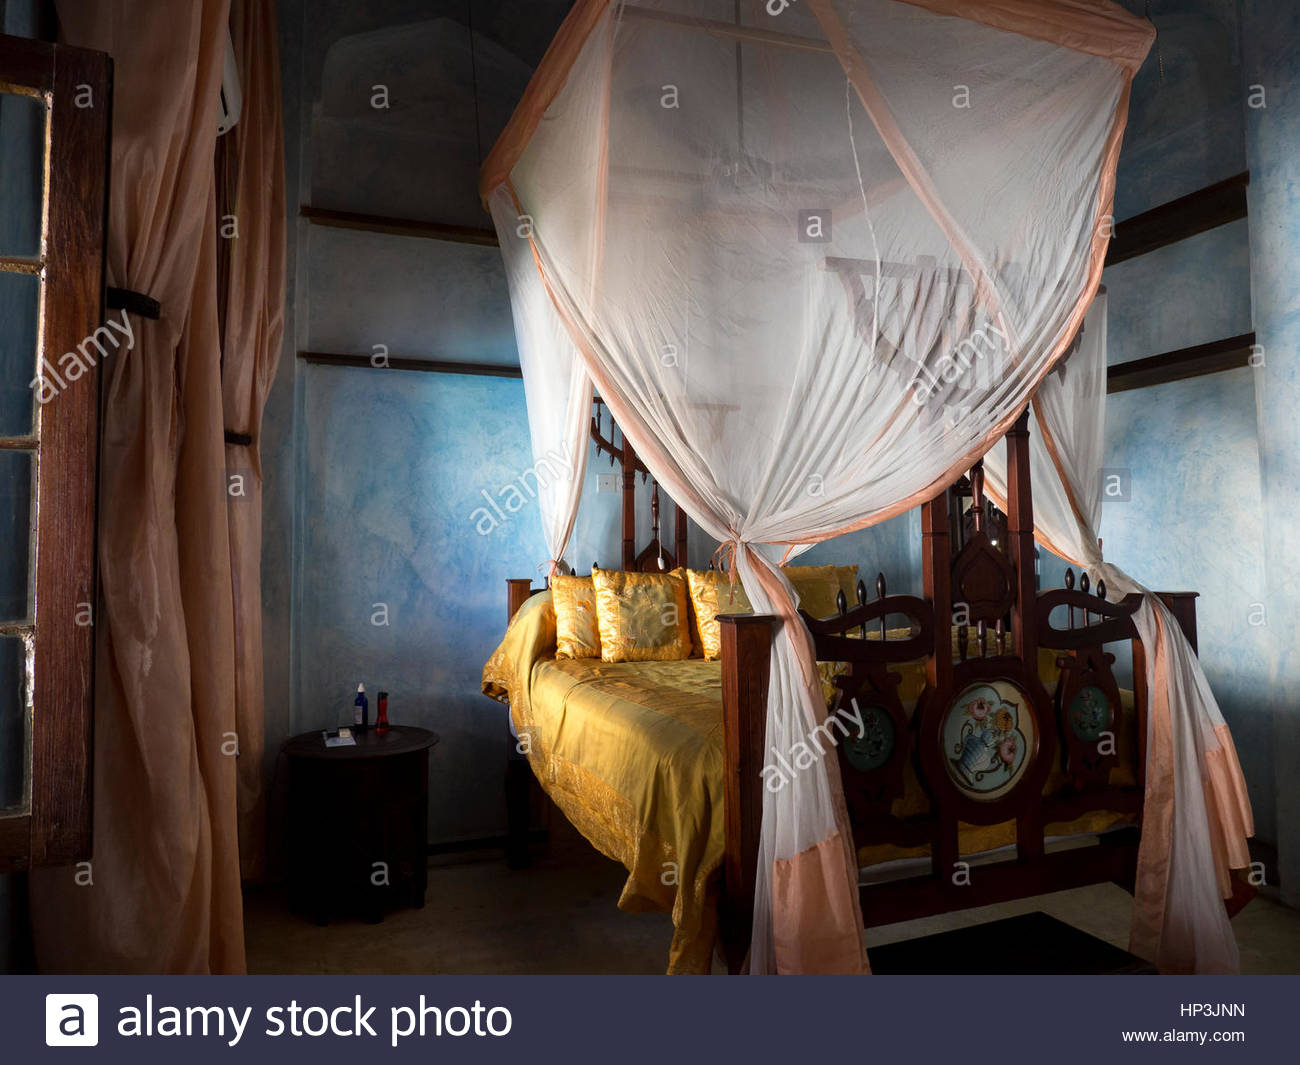 Luxury room with four-poster bed, yellow, Emerson Spice Hotel, Zanzibar Archipelago, Tanzania - Stock Image